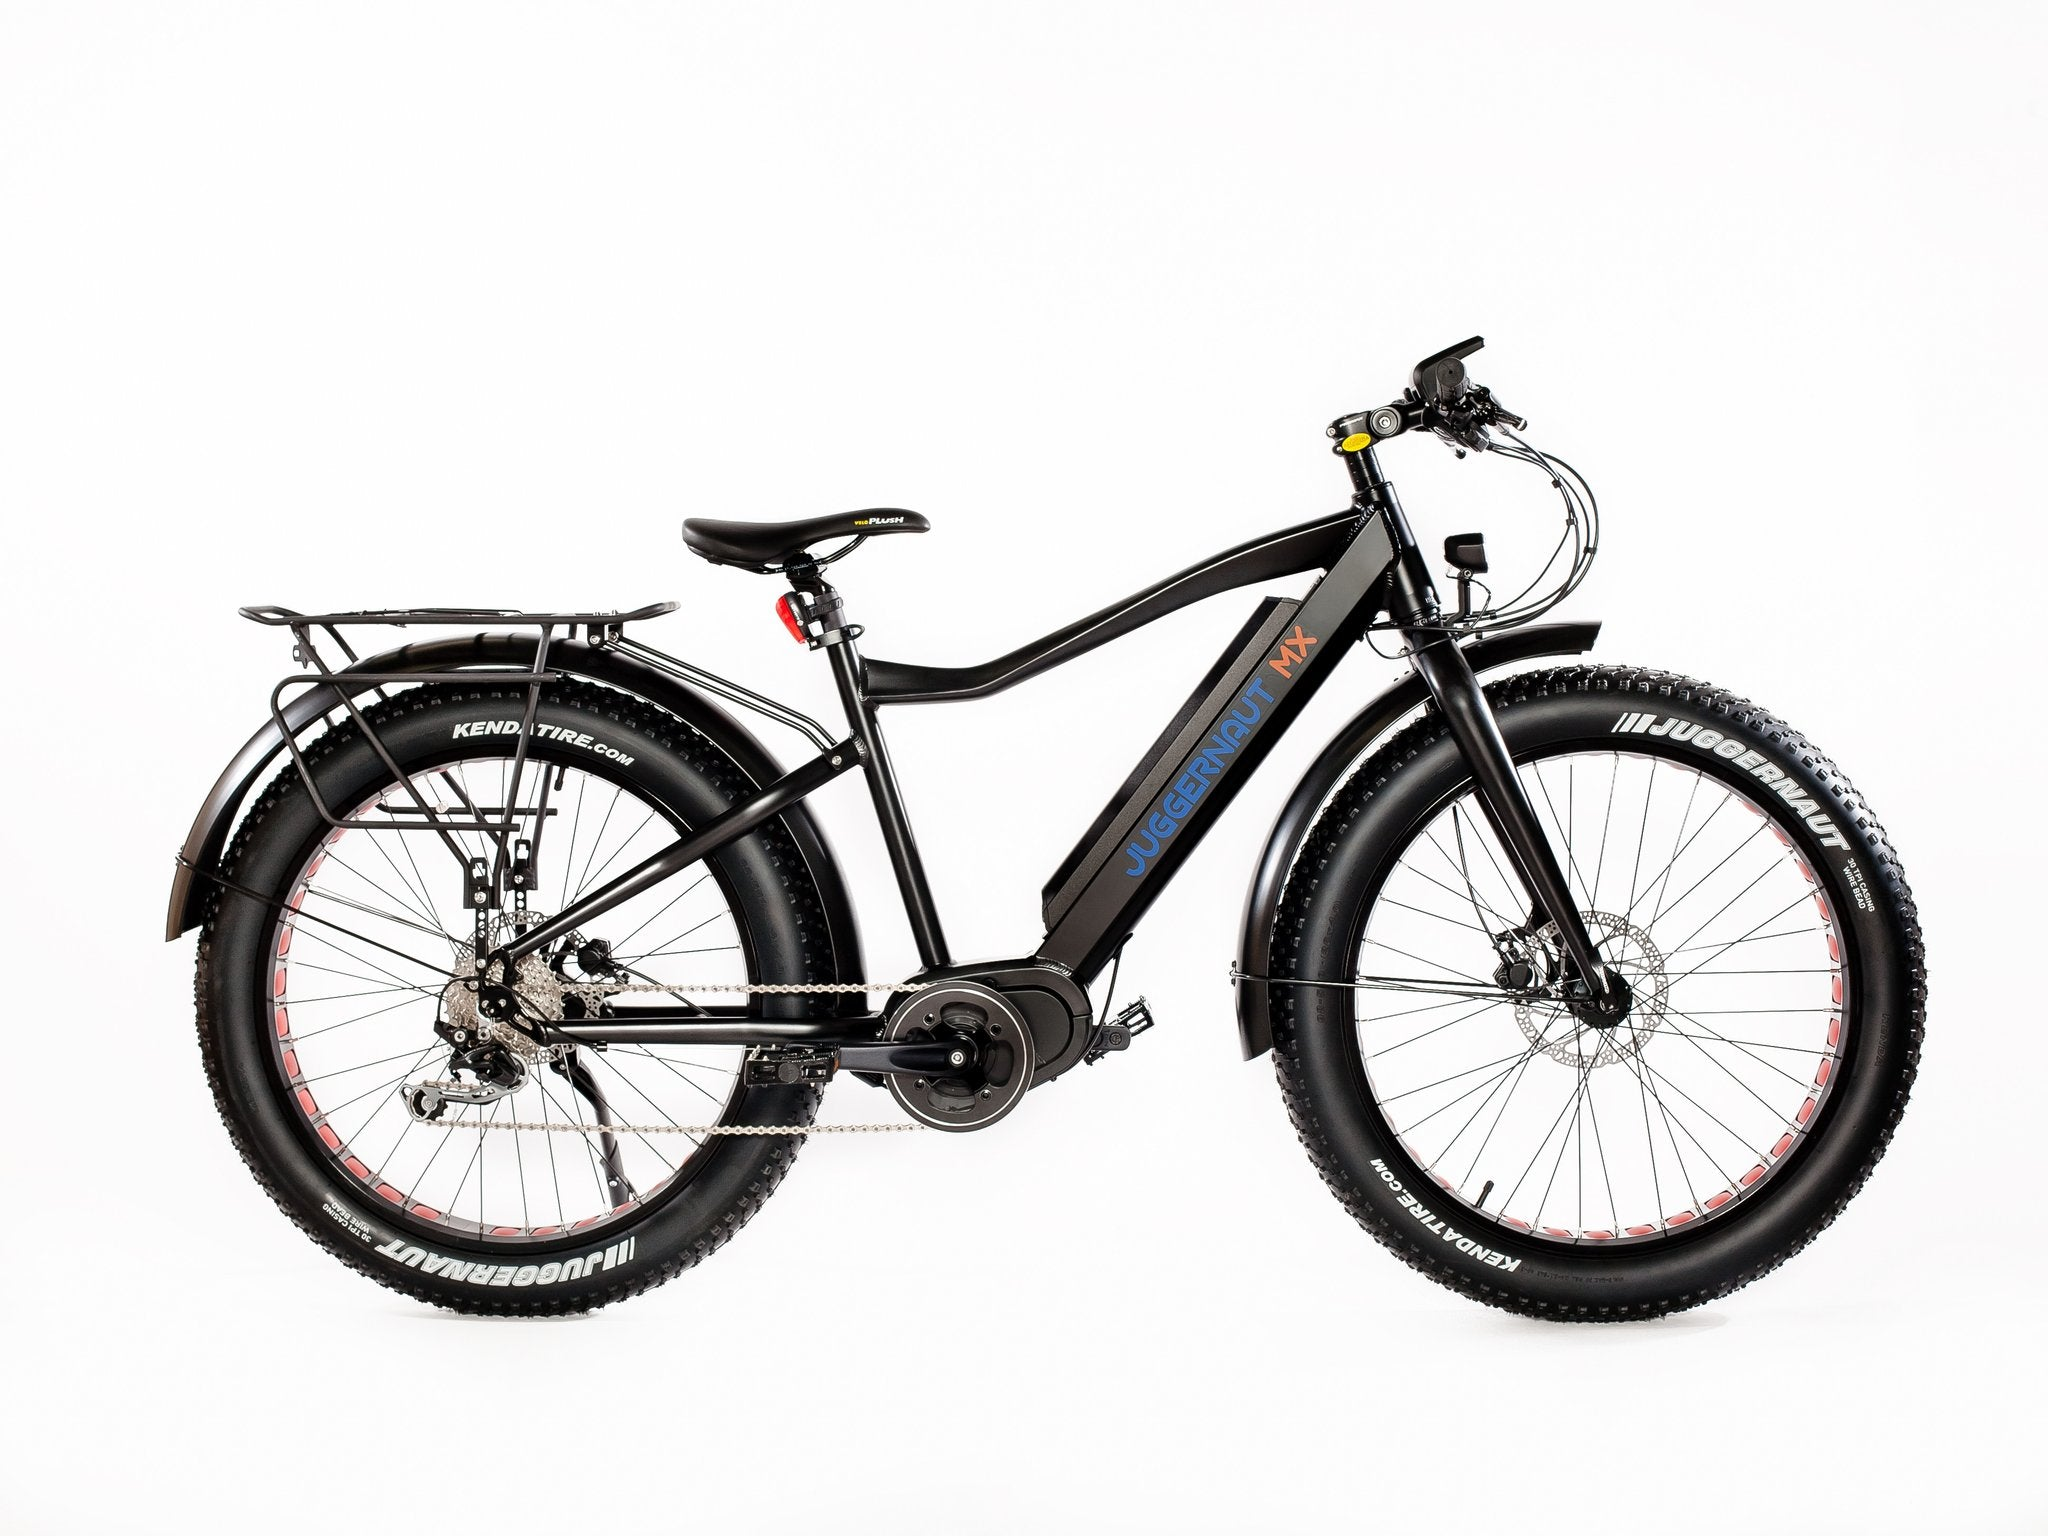 Juggernaut Mx Fat Tire Electric Bicycle Ebicycleonline Com